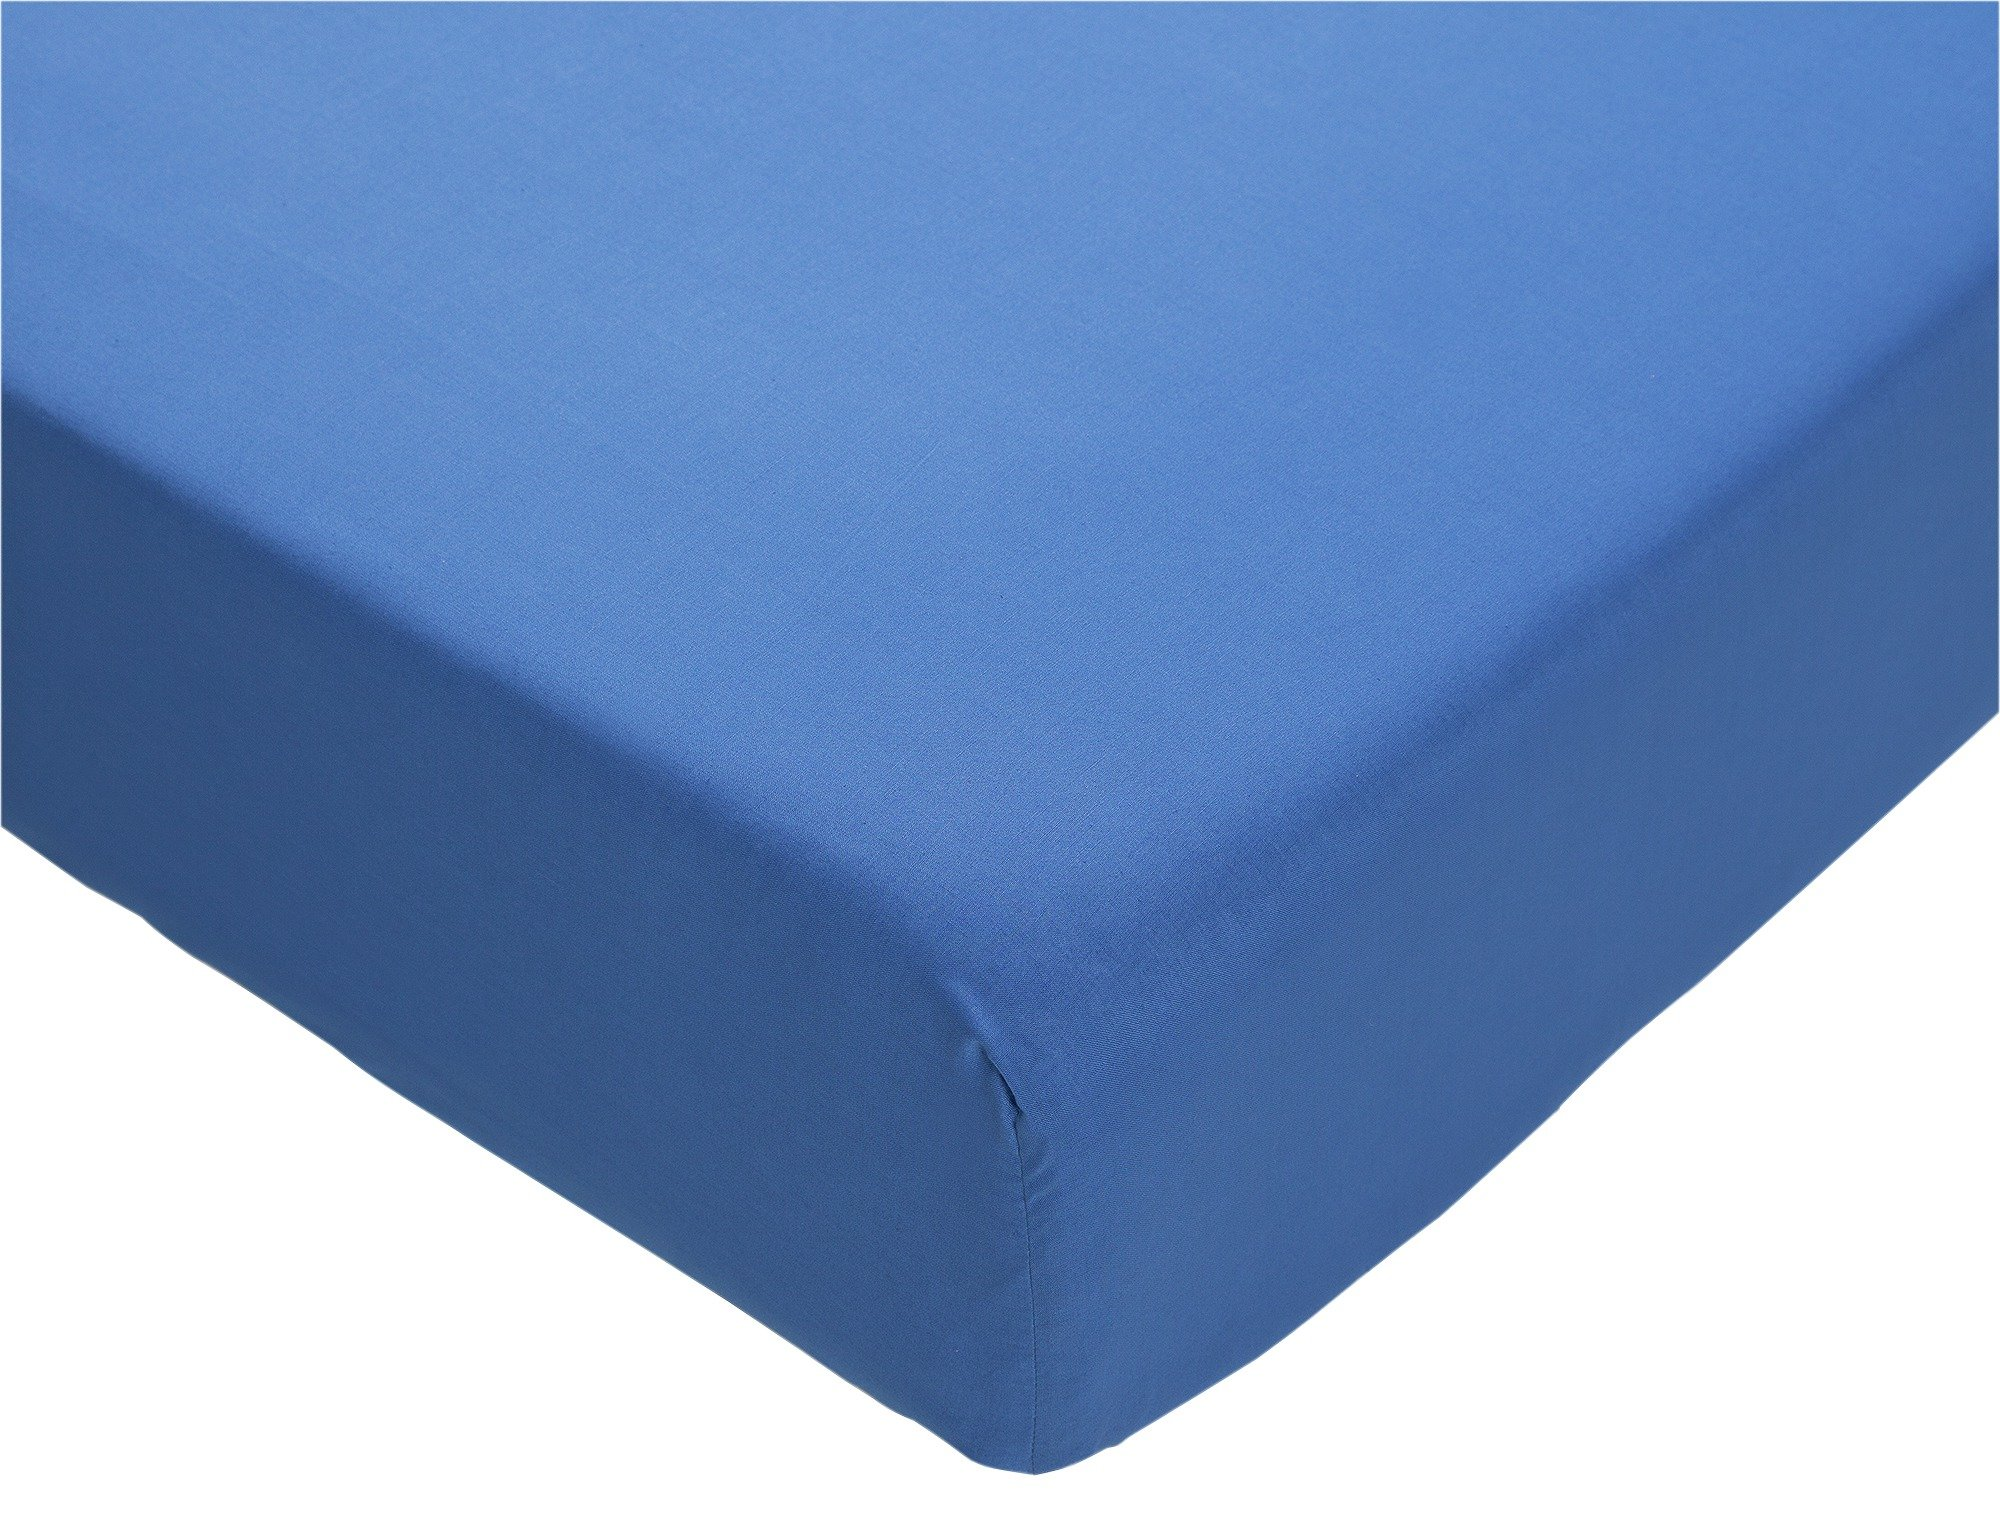 colourmatch ink blue fitted sheet  single